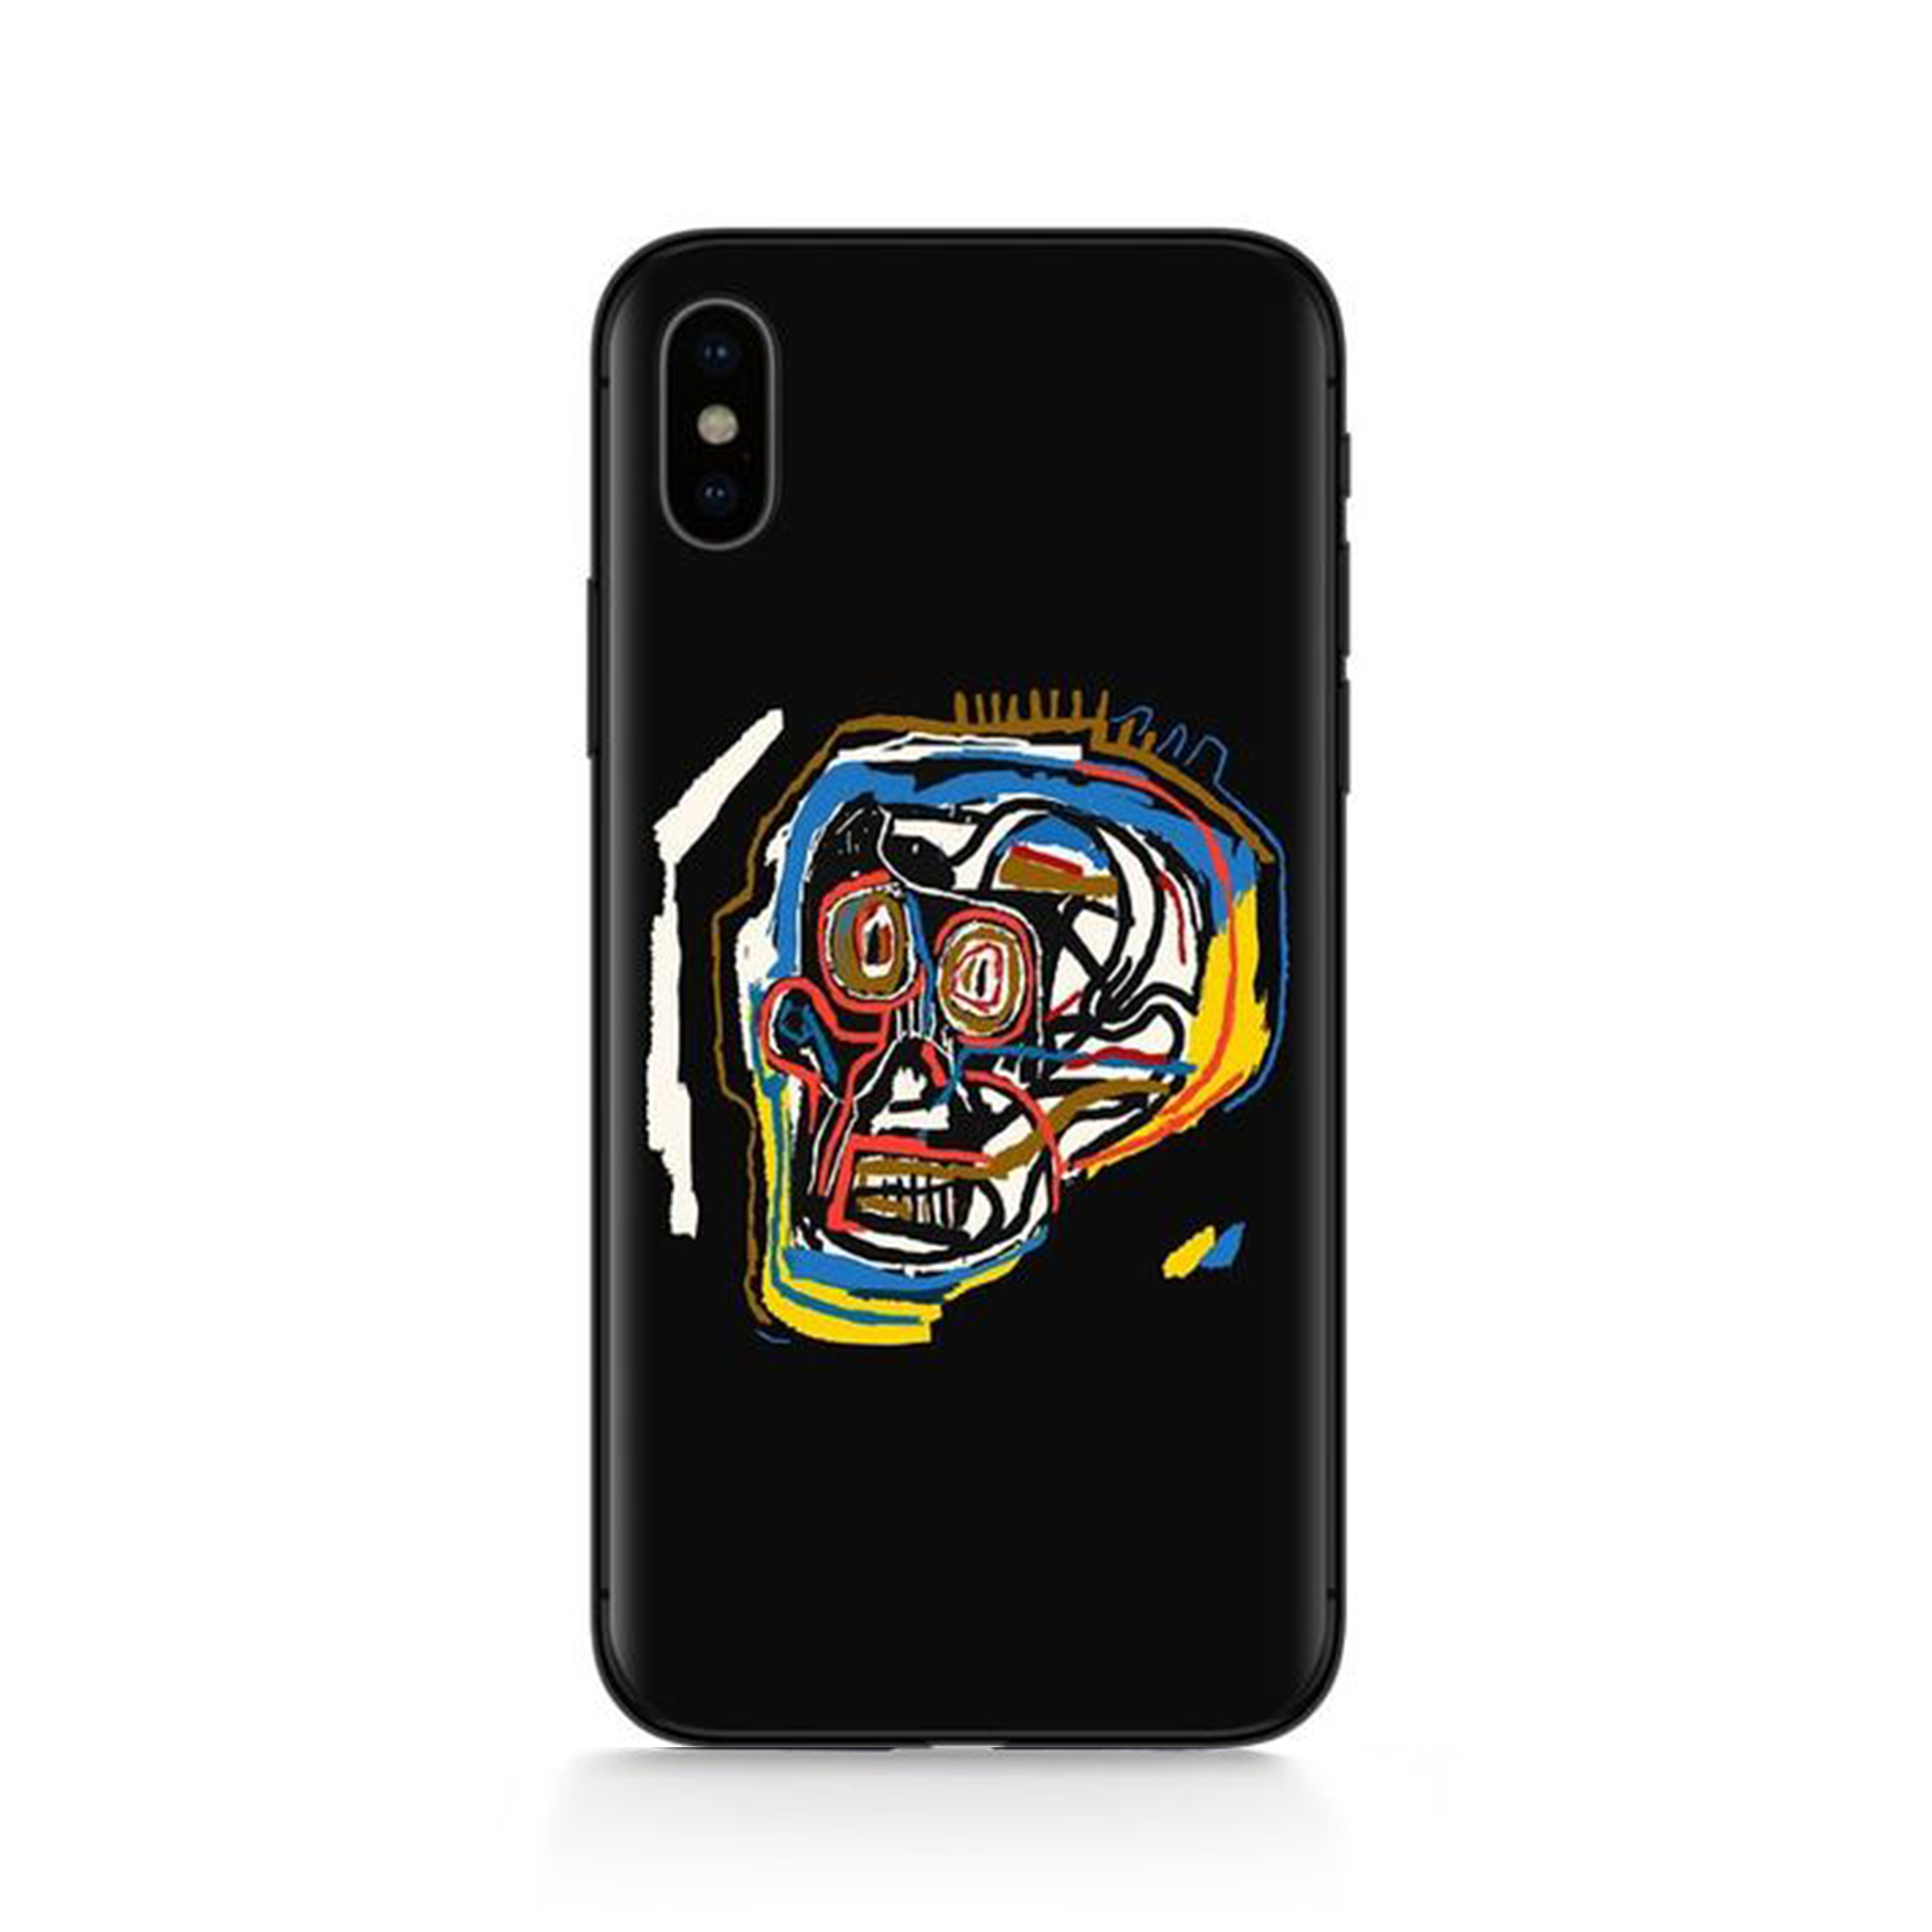 SKULL Basquiat Phone Case [iPhone] - Kiaroskuro Kiaroskuro Decor- Canvas Prints, Home Décor & Fashion